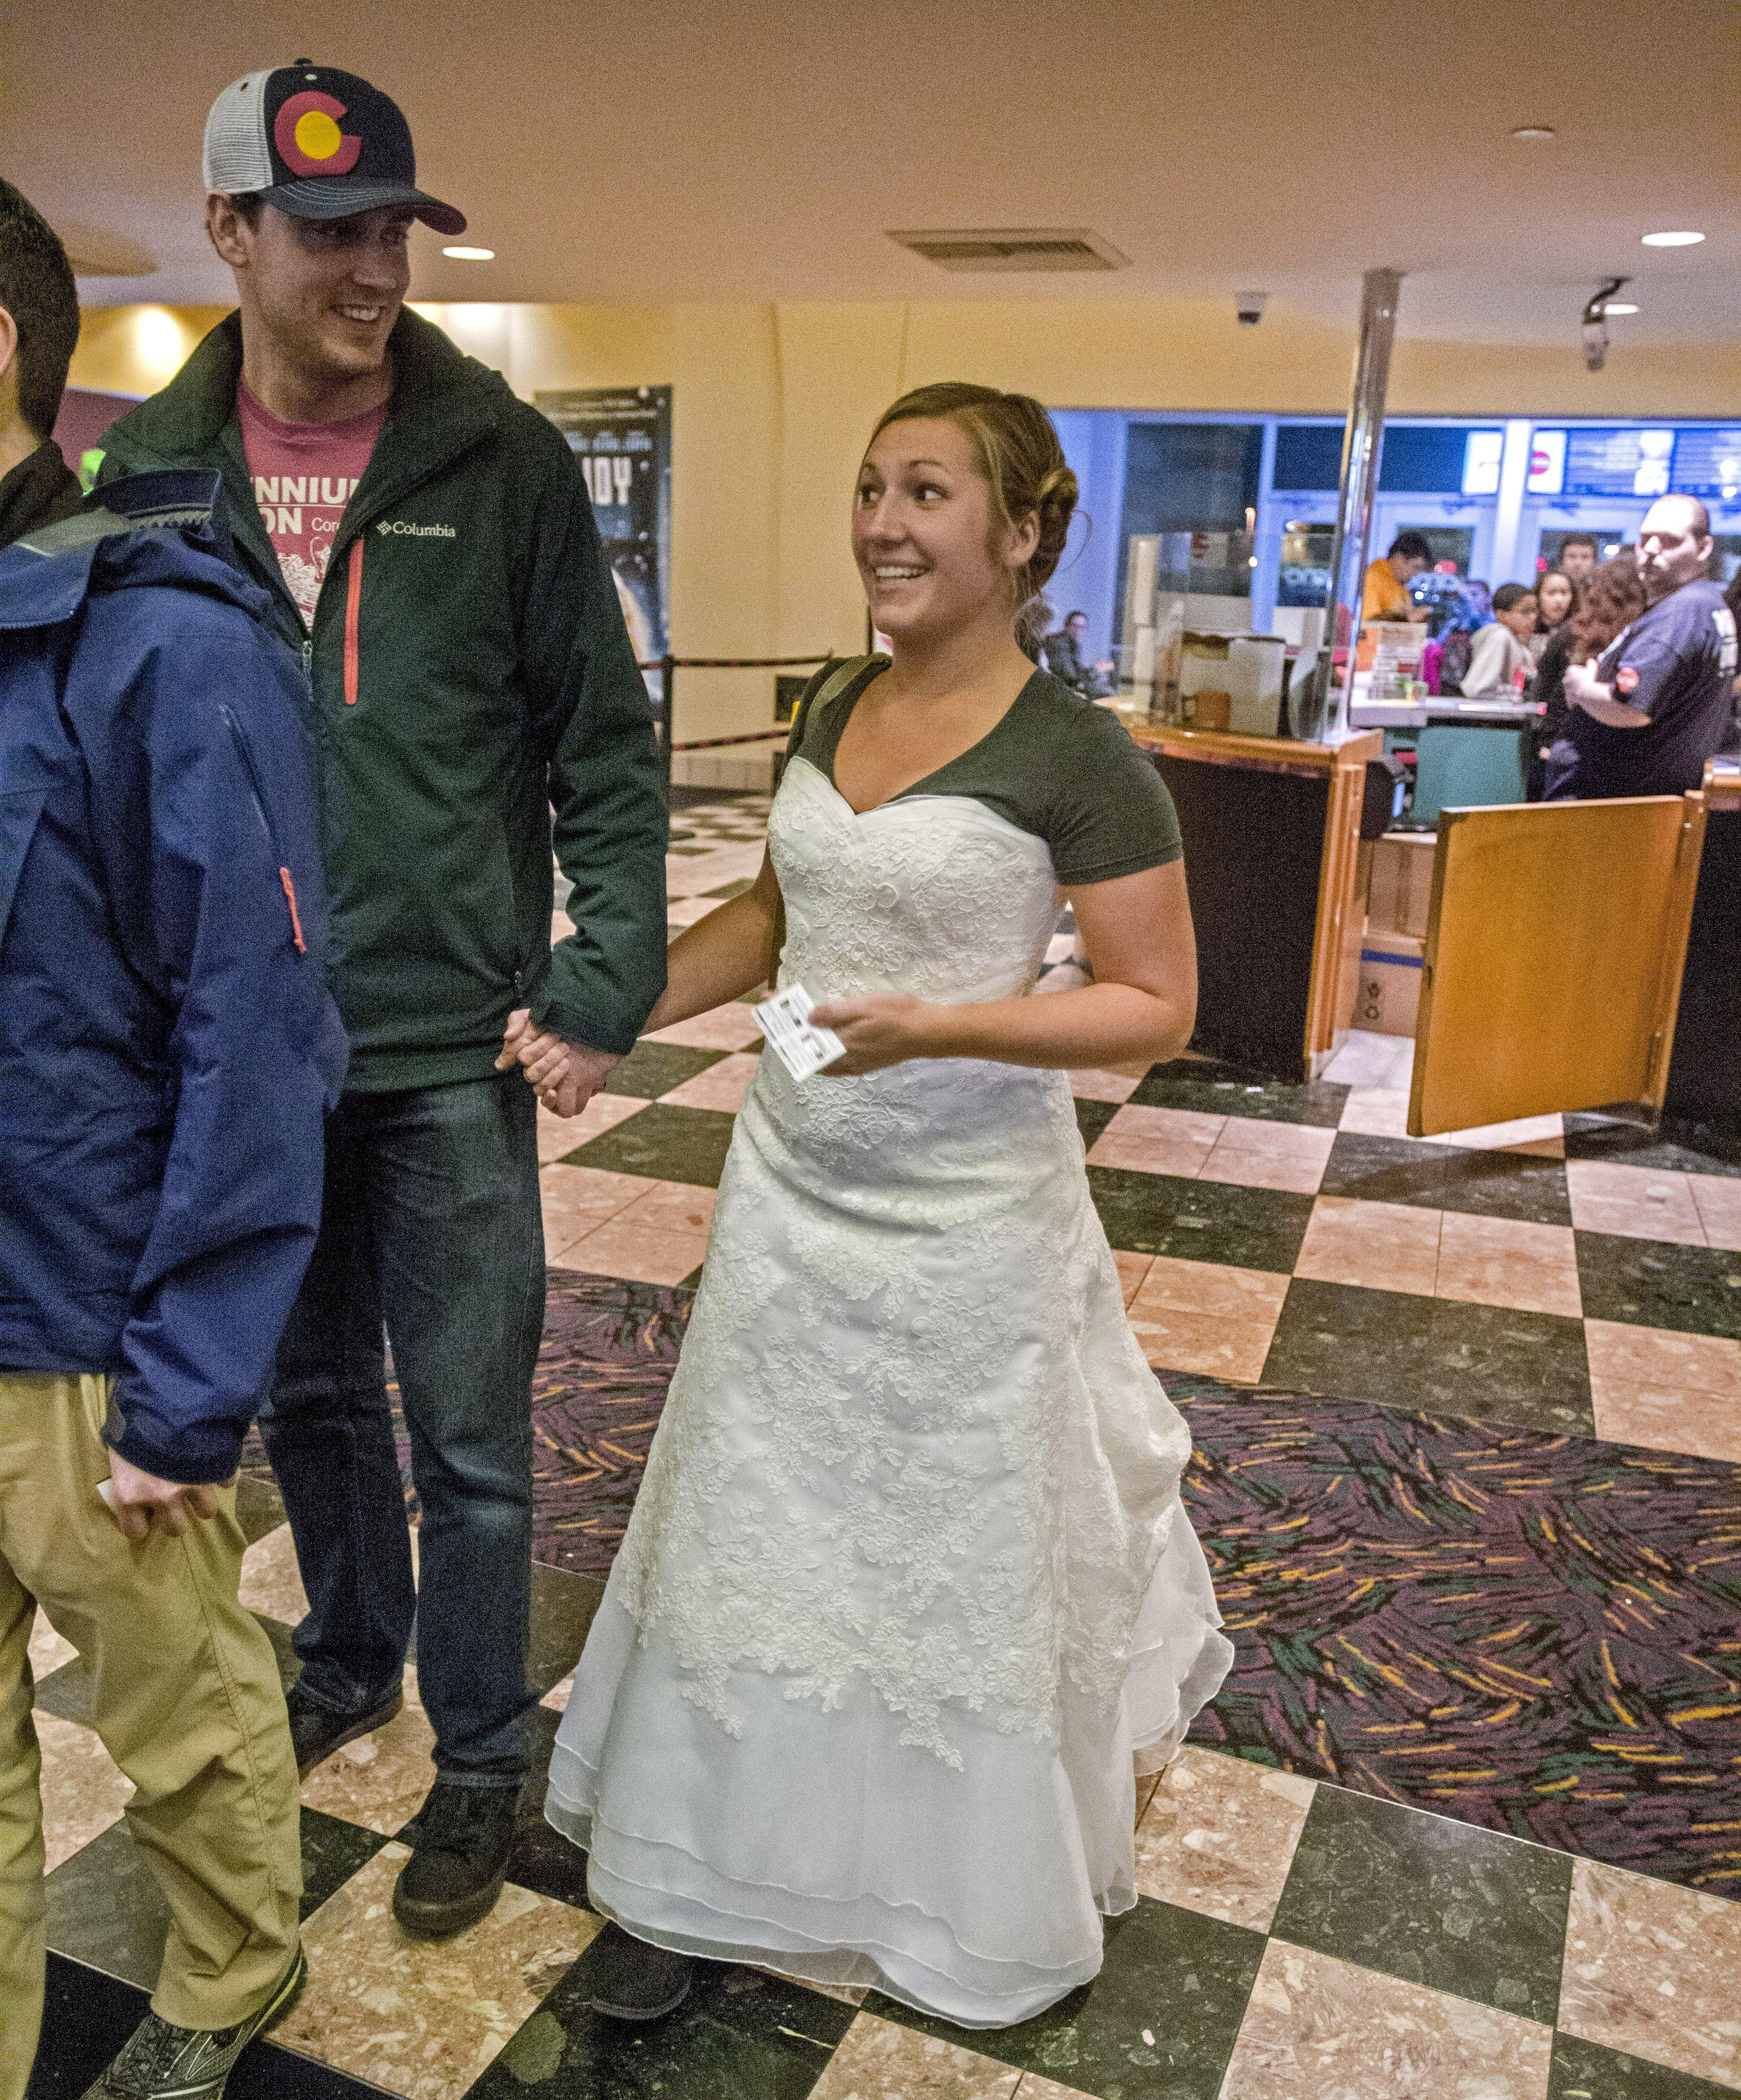 Woman watches \'Star Wars\' in wedding dress for worthy cause ...